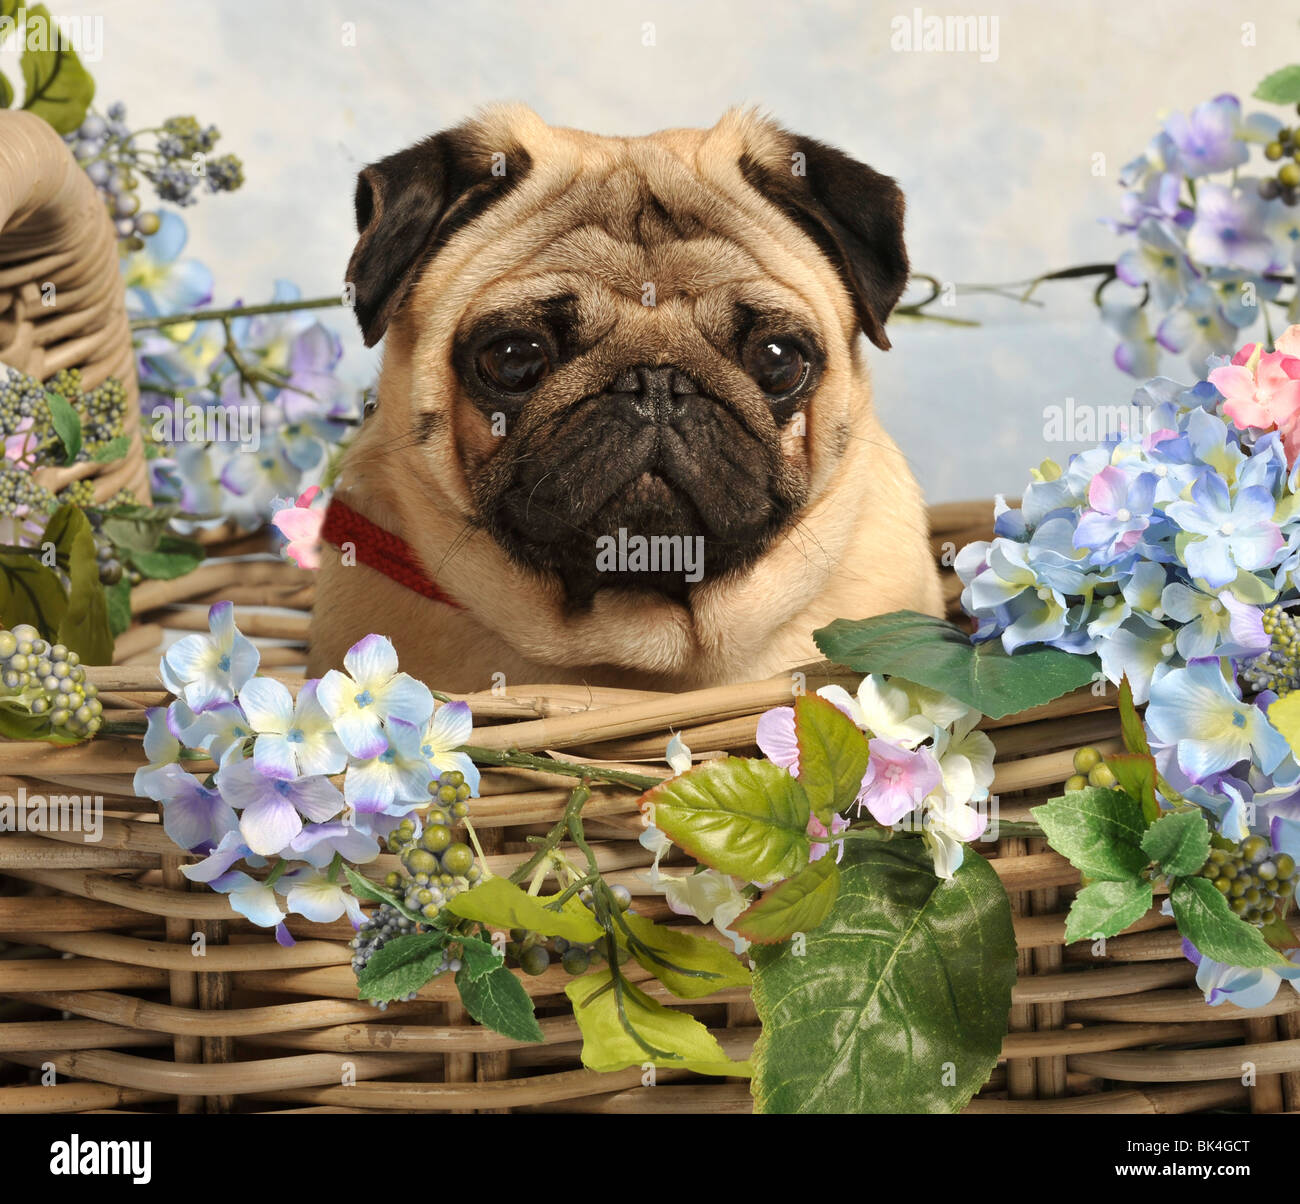 fawn pug in summer basket, UK - Stock Image